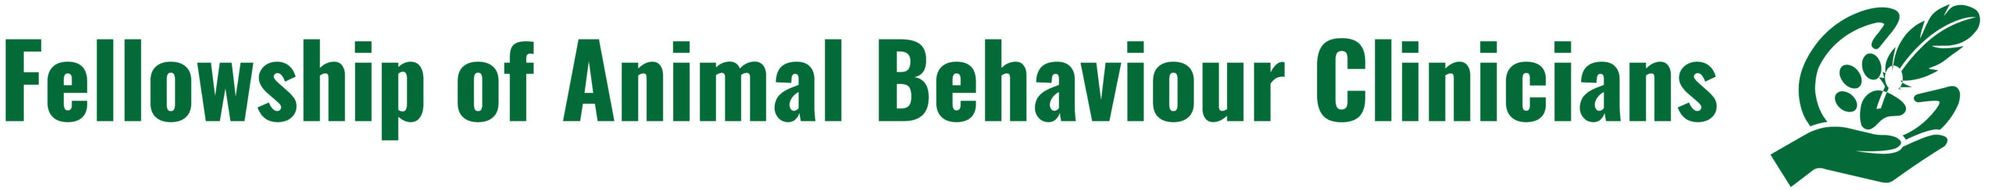 Fellowship of Animal Behaviour Clinicians